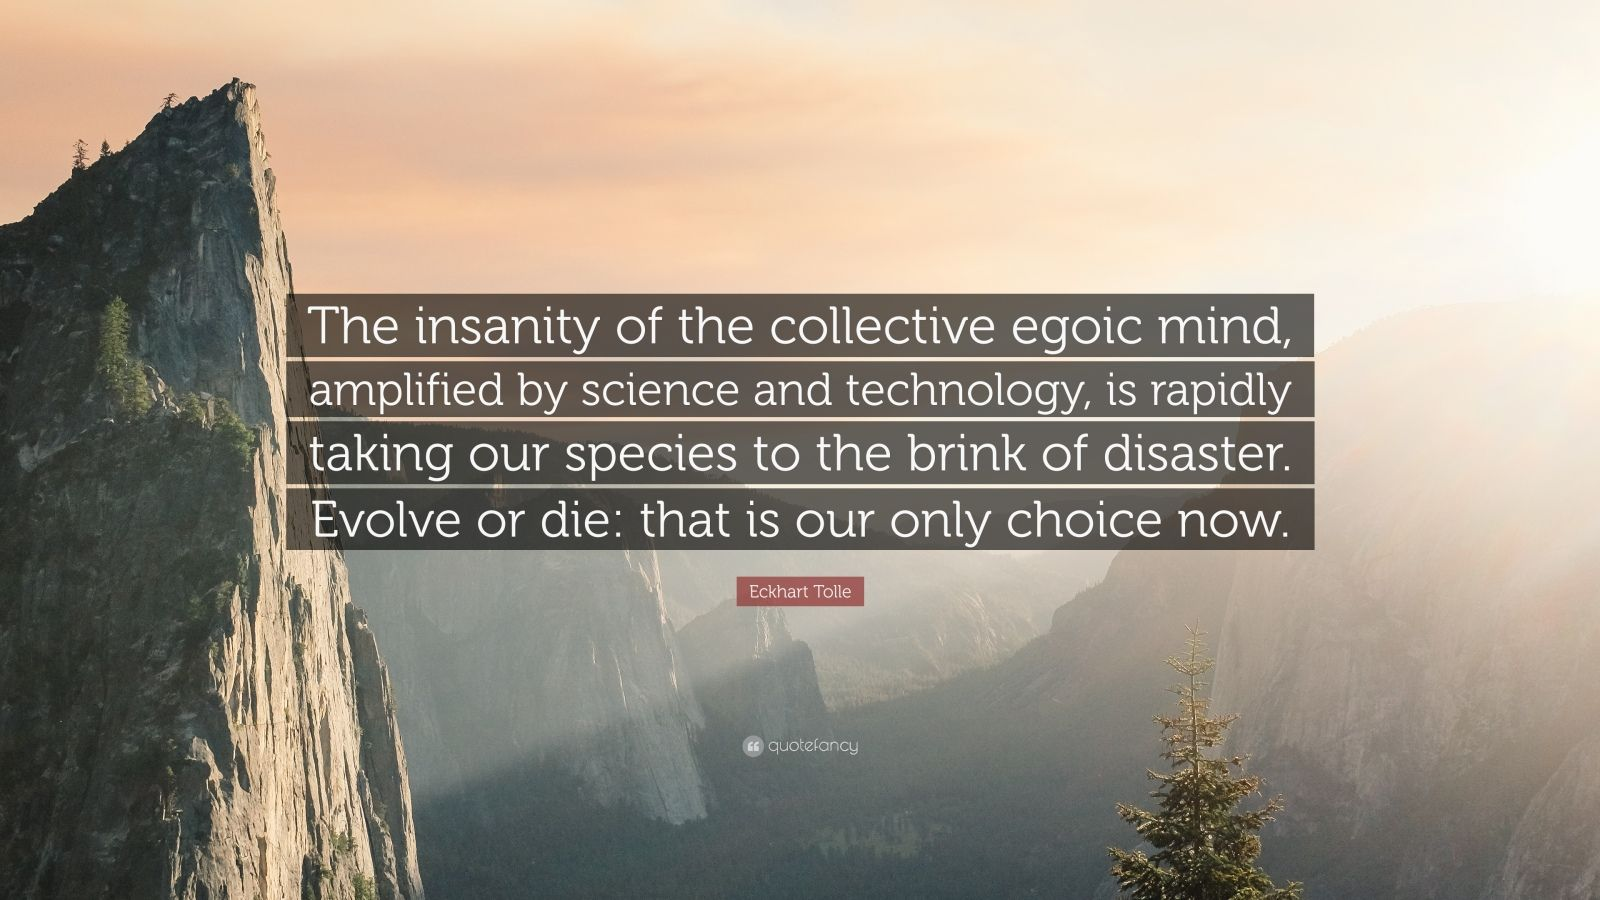 """Eckhart Tolle Quote: """"The insanity of the collective egoic mind, amplified by science and technology, is rapidly taking our species to the brink of disaster. Evolve or die: that is our only choice now."""""""